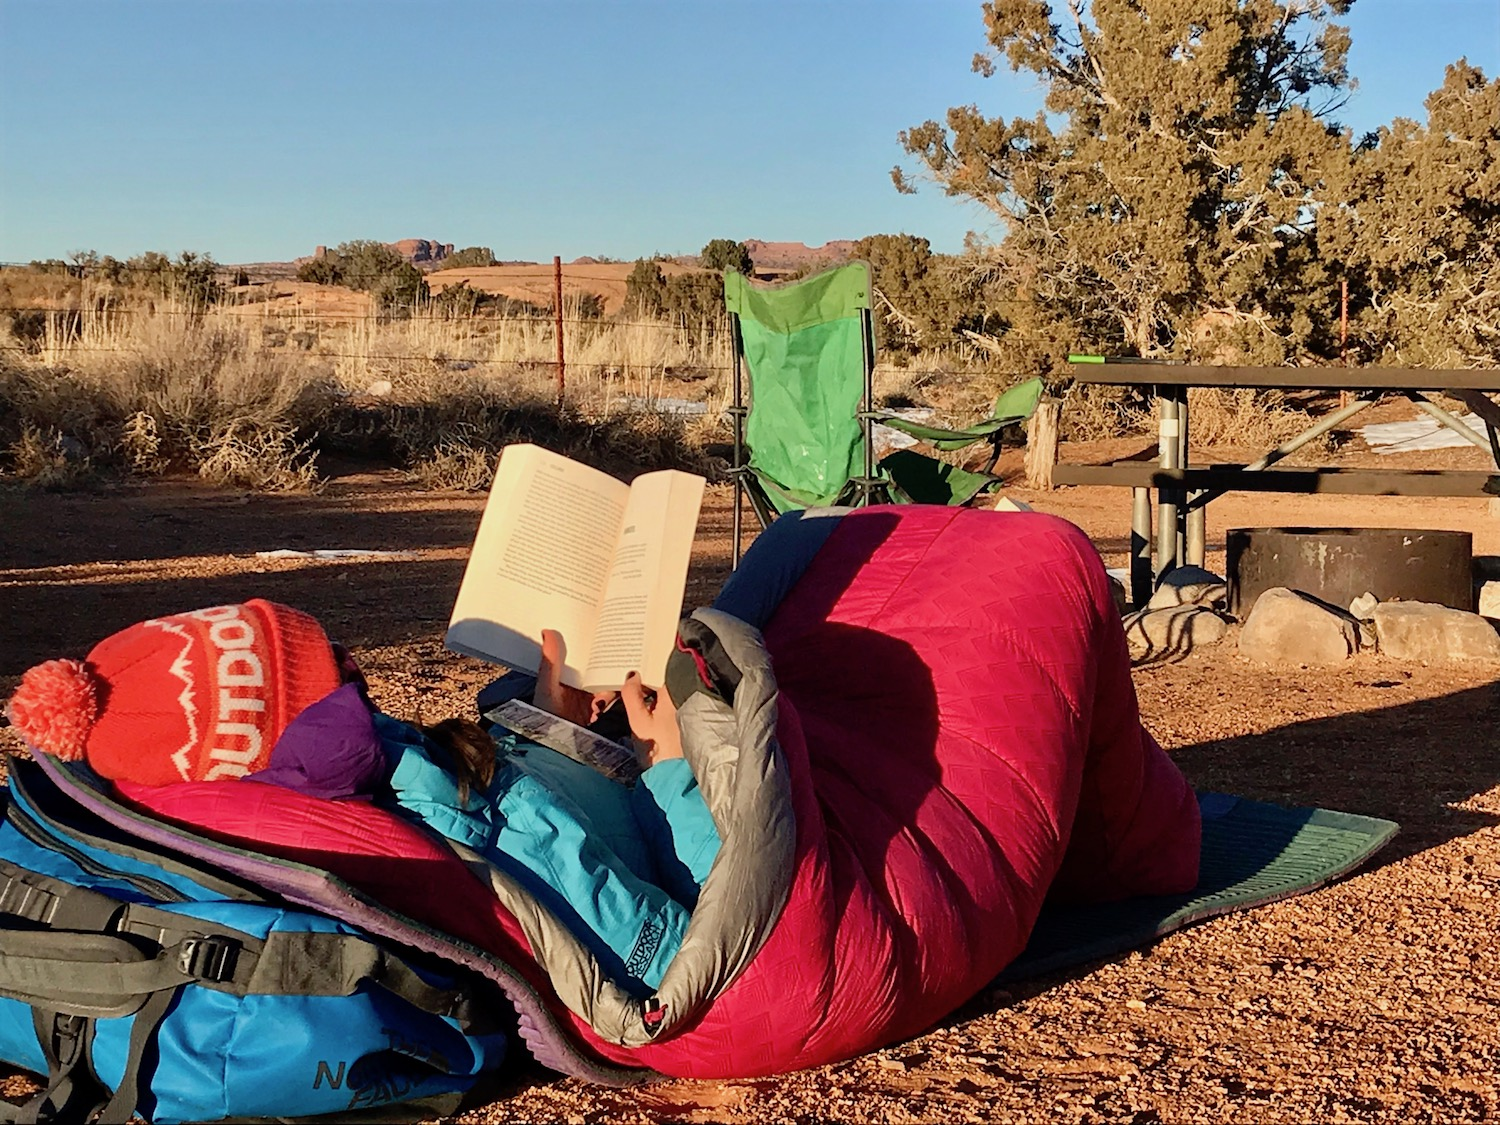 Slickrock Overnight. It doesn't always have to be a gnarly adventure––sometimes getting outside means reading a good book from the comfort of your sleeping bag.